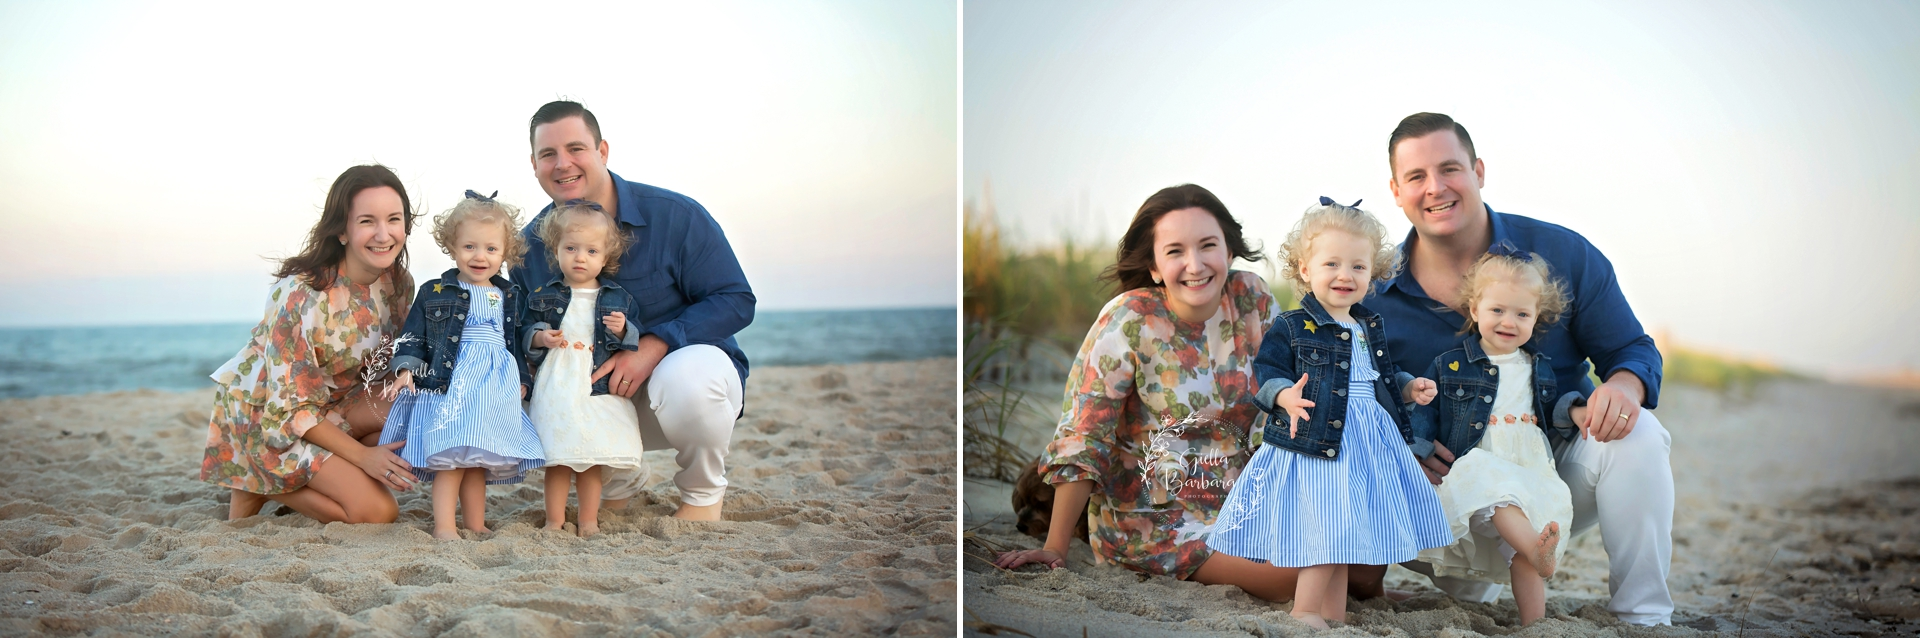 Sunset Beach & Family Photography